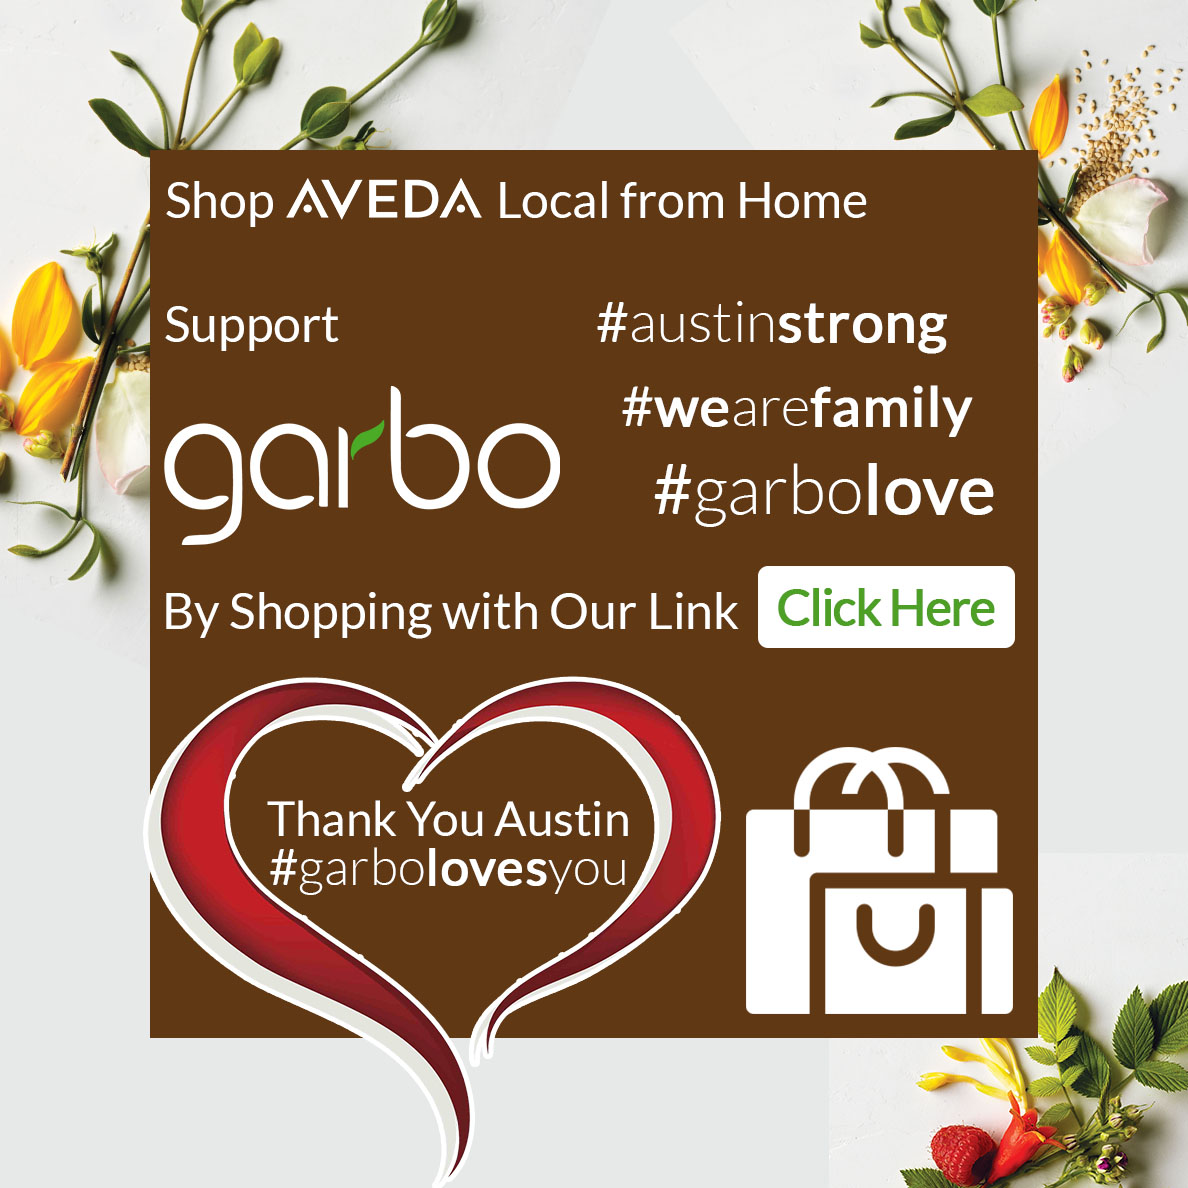 garbo-a-salon-e-commerce-shop-austin-texas